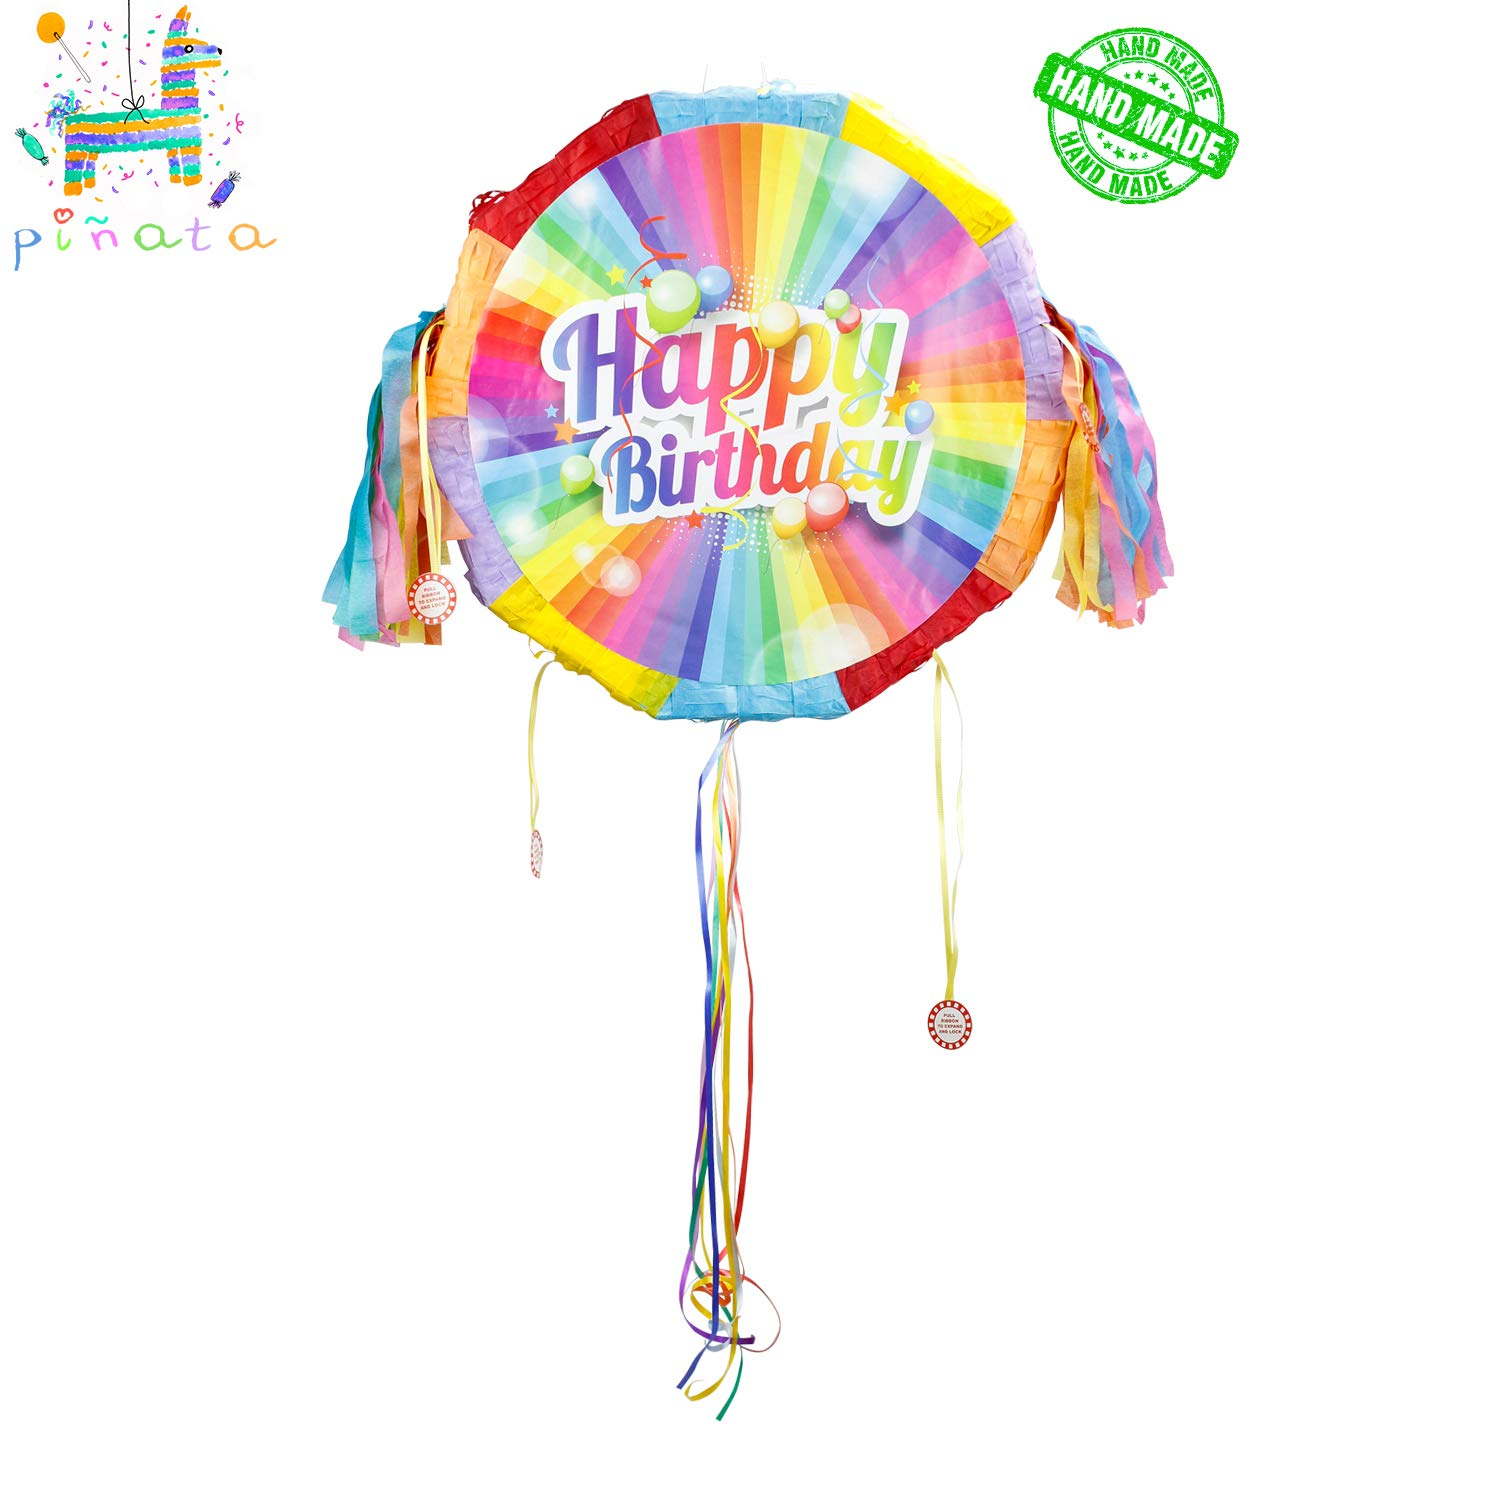 kaimei Pinata for Kids Birthday Anniversary Celebration Decorations Gaming Theme Pet Party Fiesta Supplies with Multicolored Confetti (Happy Birthday) by kaimei